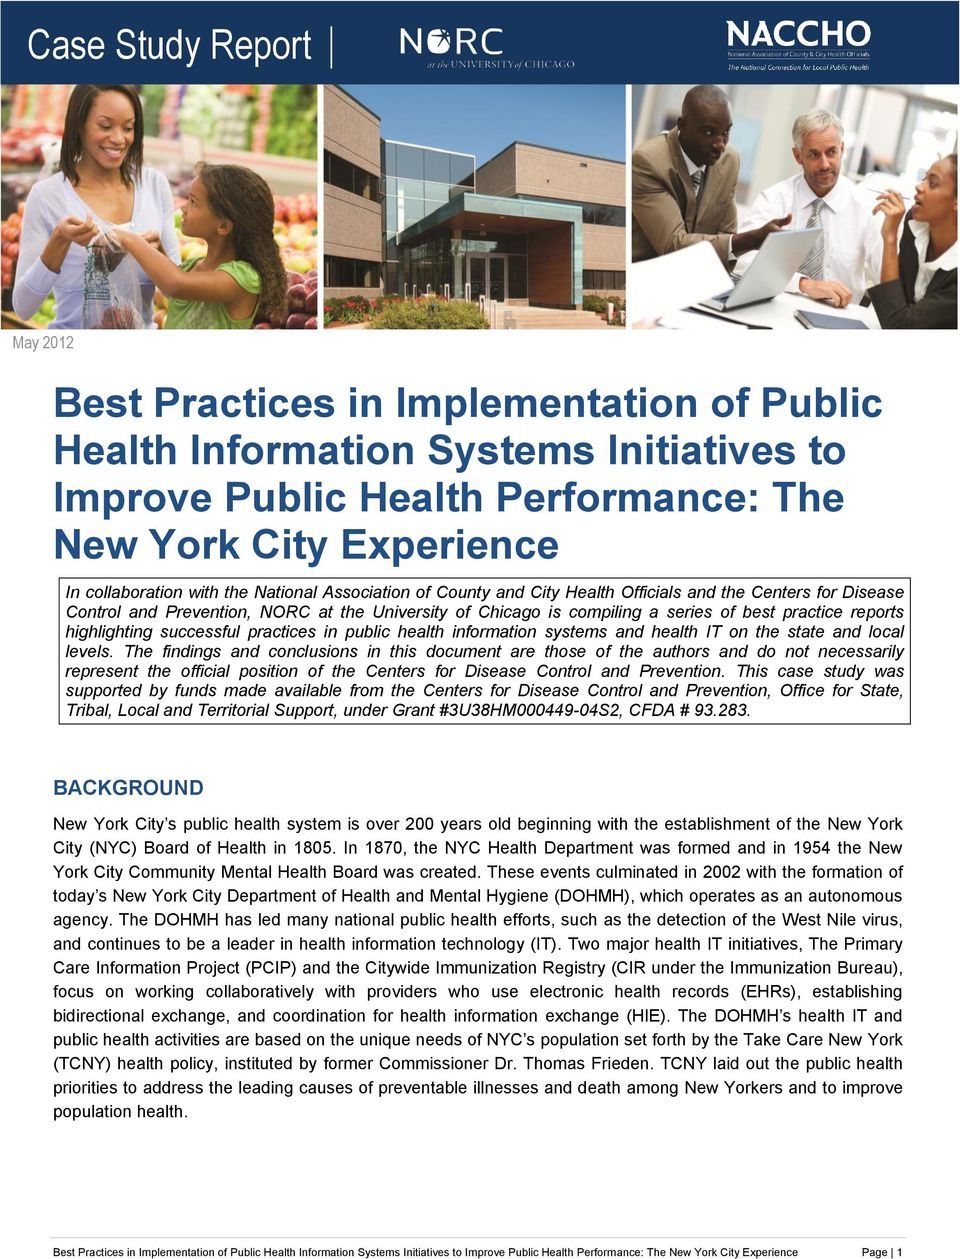 highlighting successful practices in public health information systems and health IT on the state and local levels.